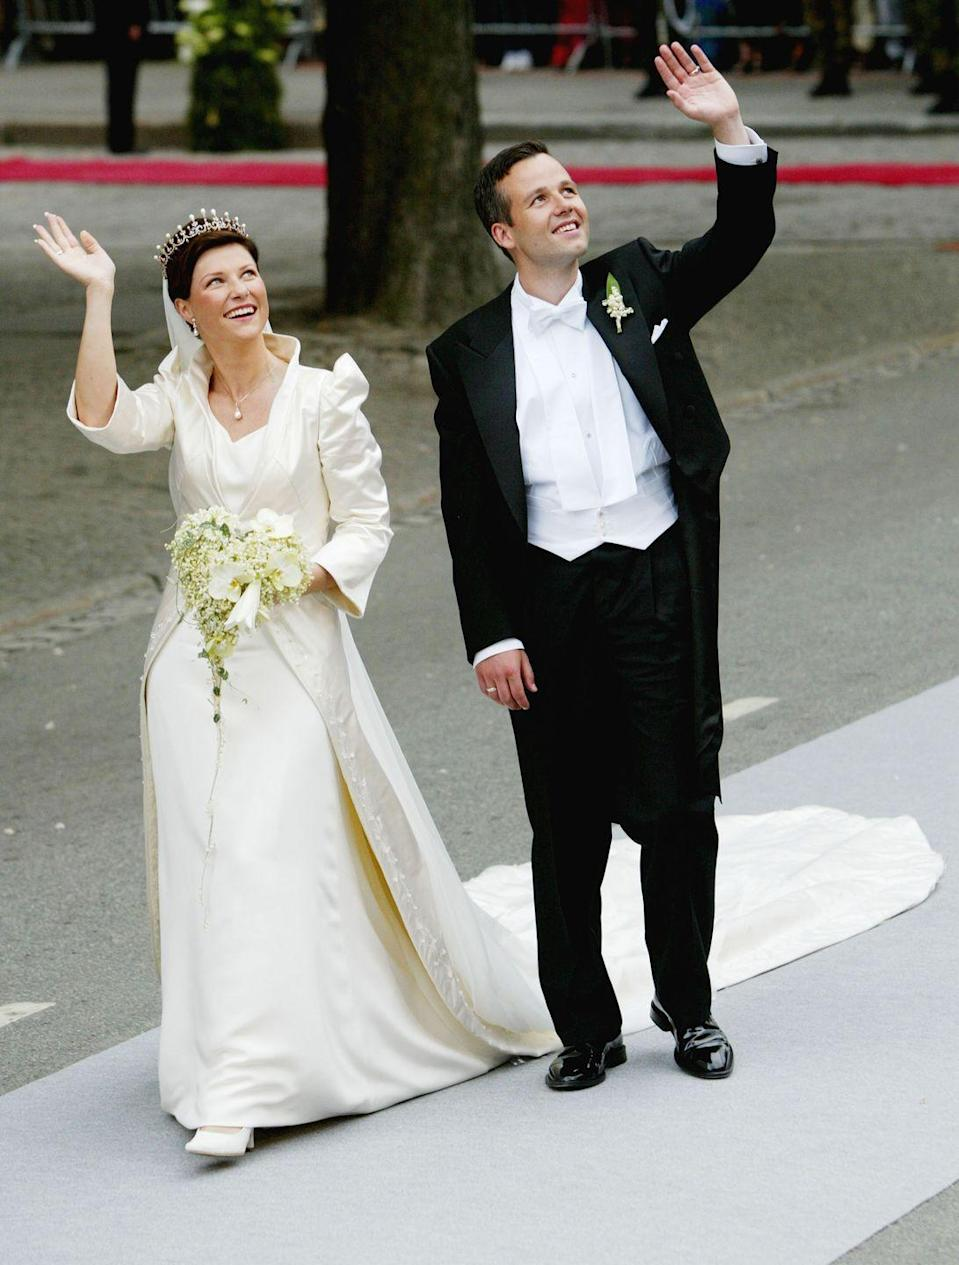 <p>For her 2002 wedding to Ari Behn, the only daughter of the King and Queen of Norway, Princess Märtha-Louise, wore an ivory silk coat dress by Norwegian designer Wenche Lyche over a silk slip dress and the Queen's pearl and diamond tiara. </p>